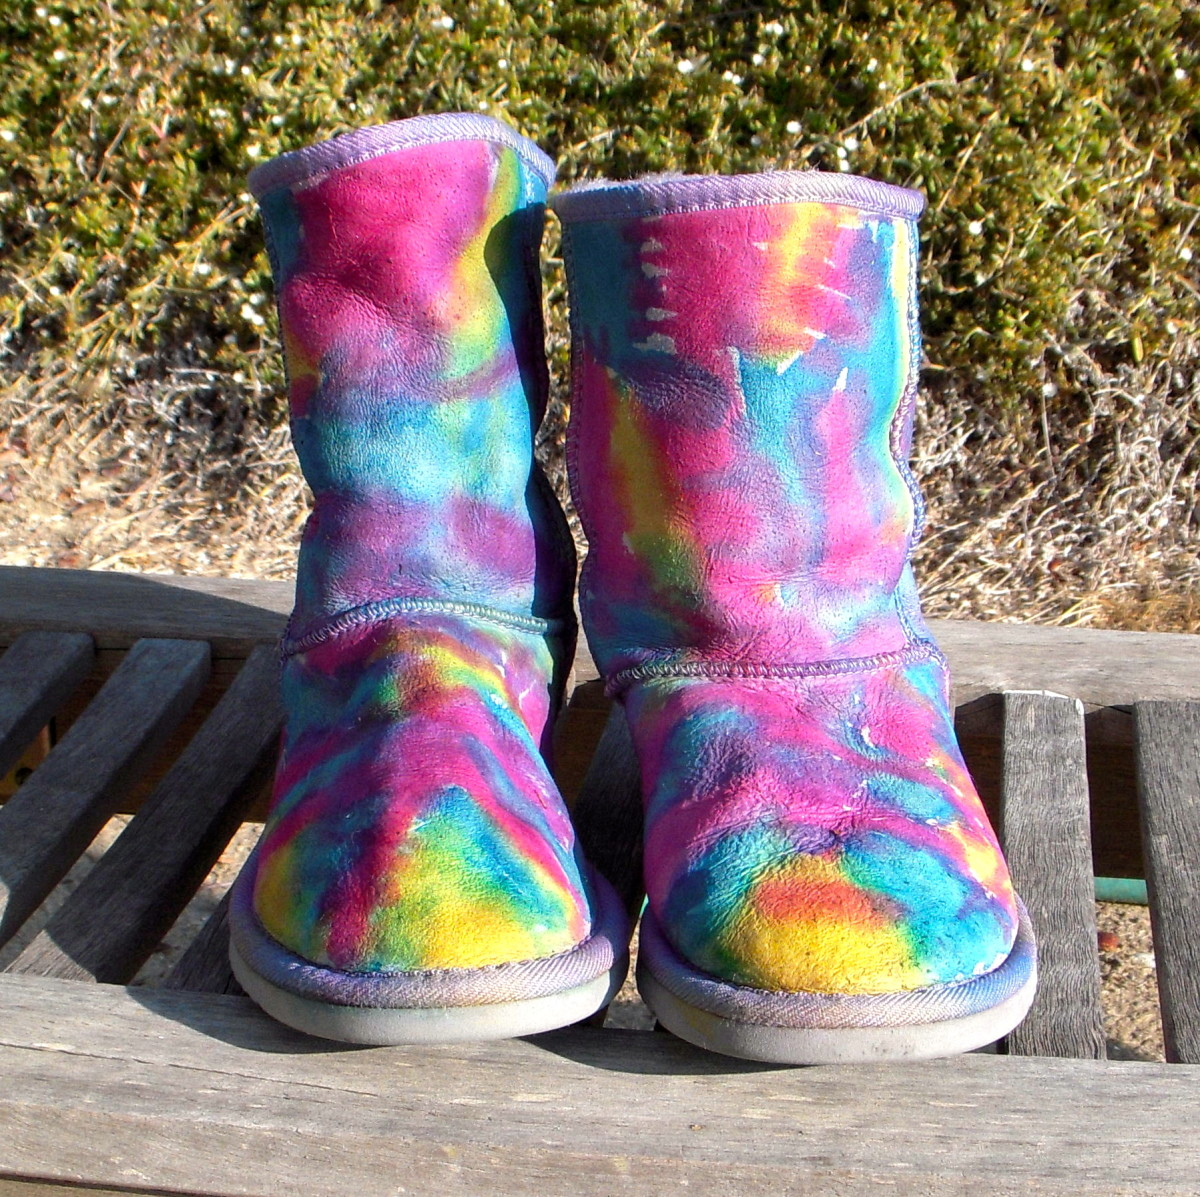 I gave my Uggs a make-over using Tulip One-Step Tie-Dye!